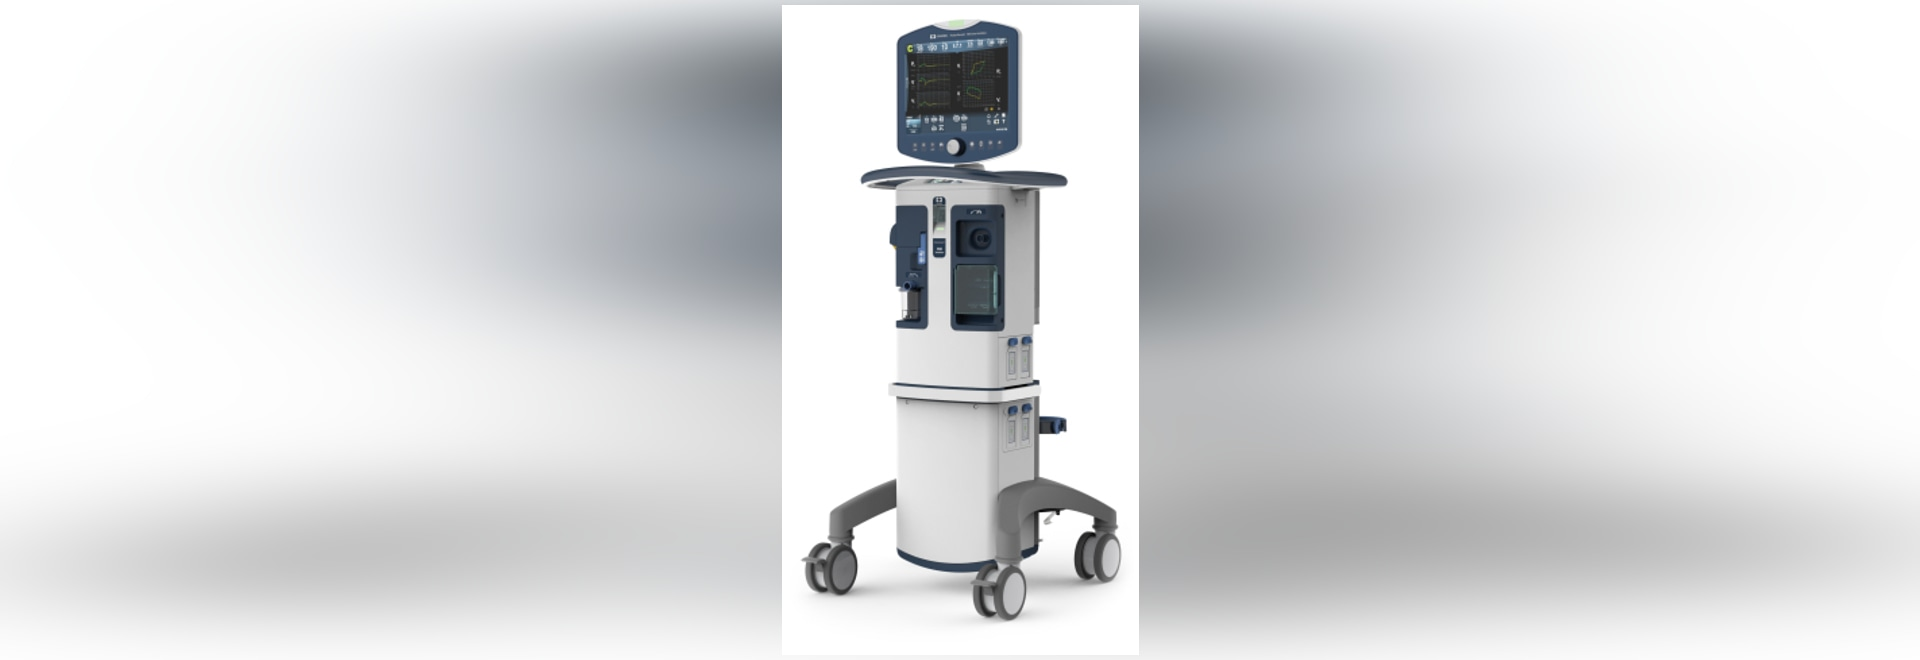 Puritan Bennett 980 ventilator, as shown in a submitted photo from Covidien